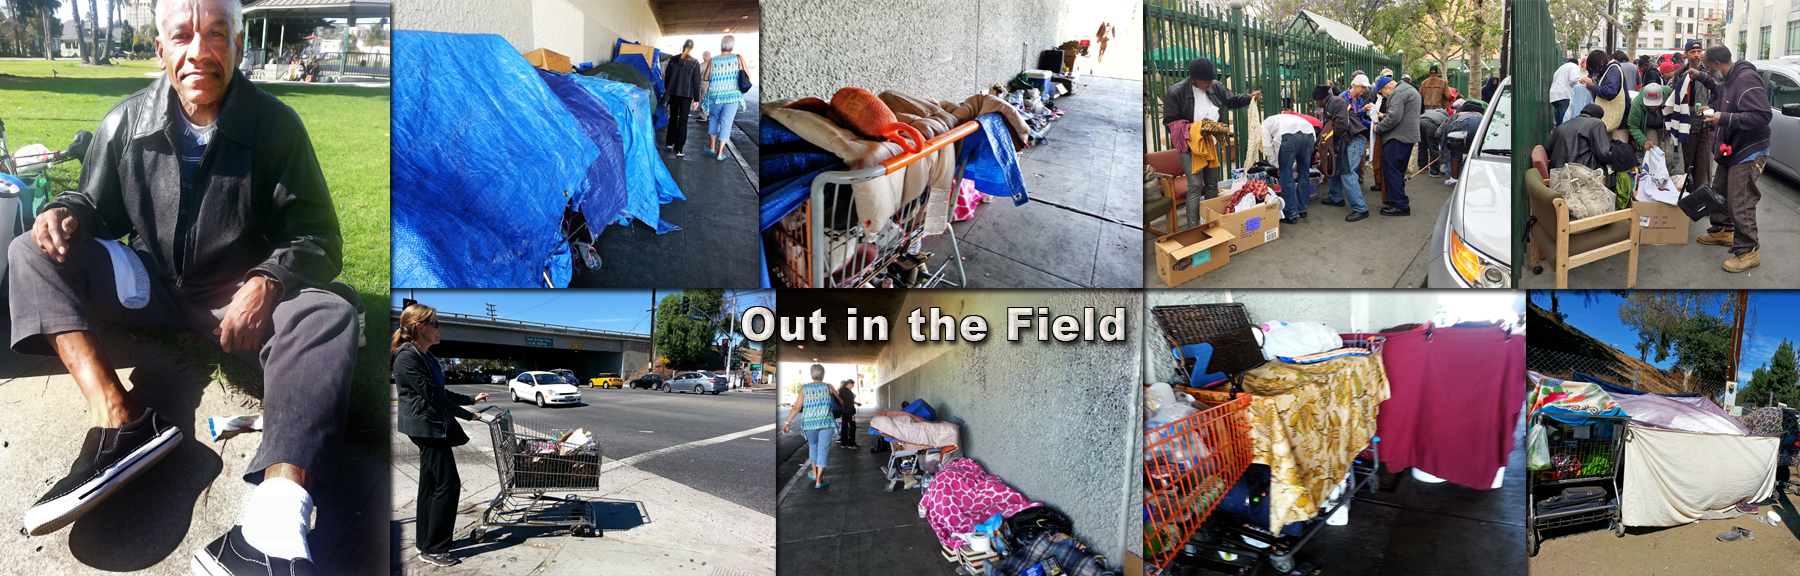 homeless-out-in-the-fieldg-bar